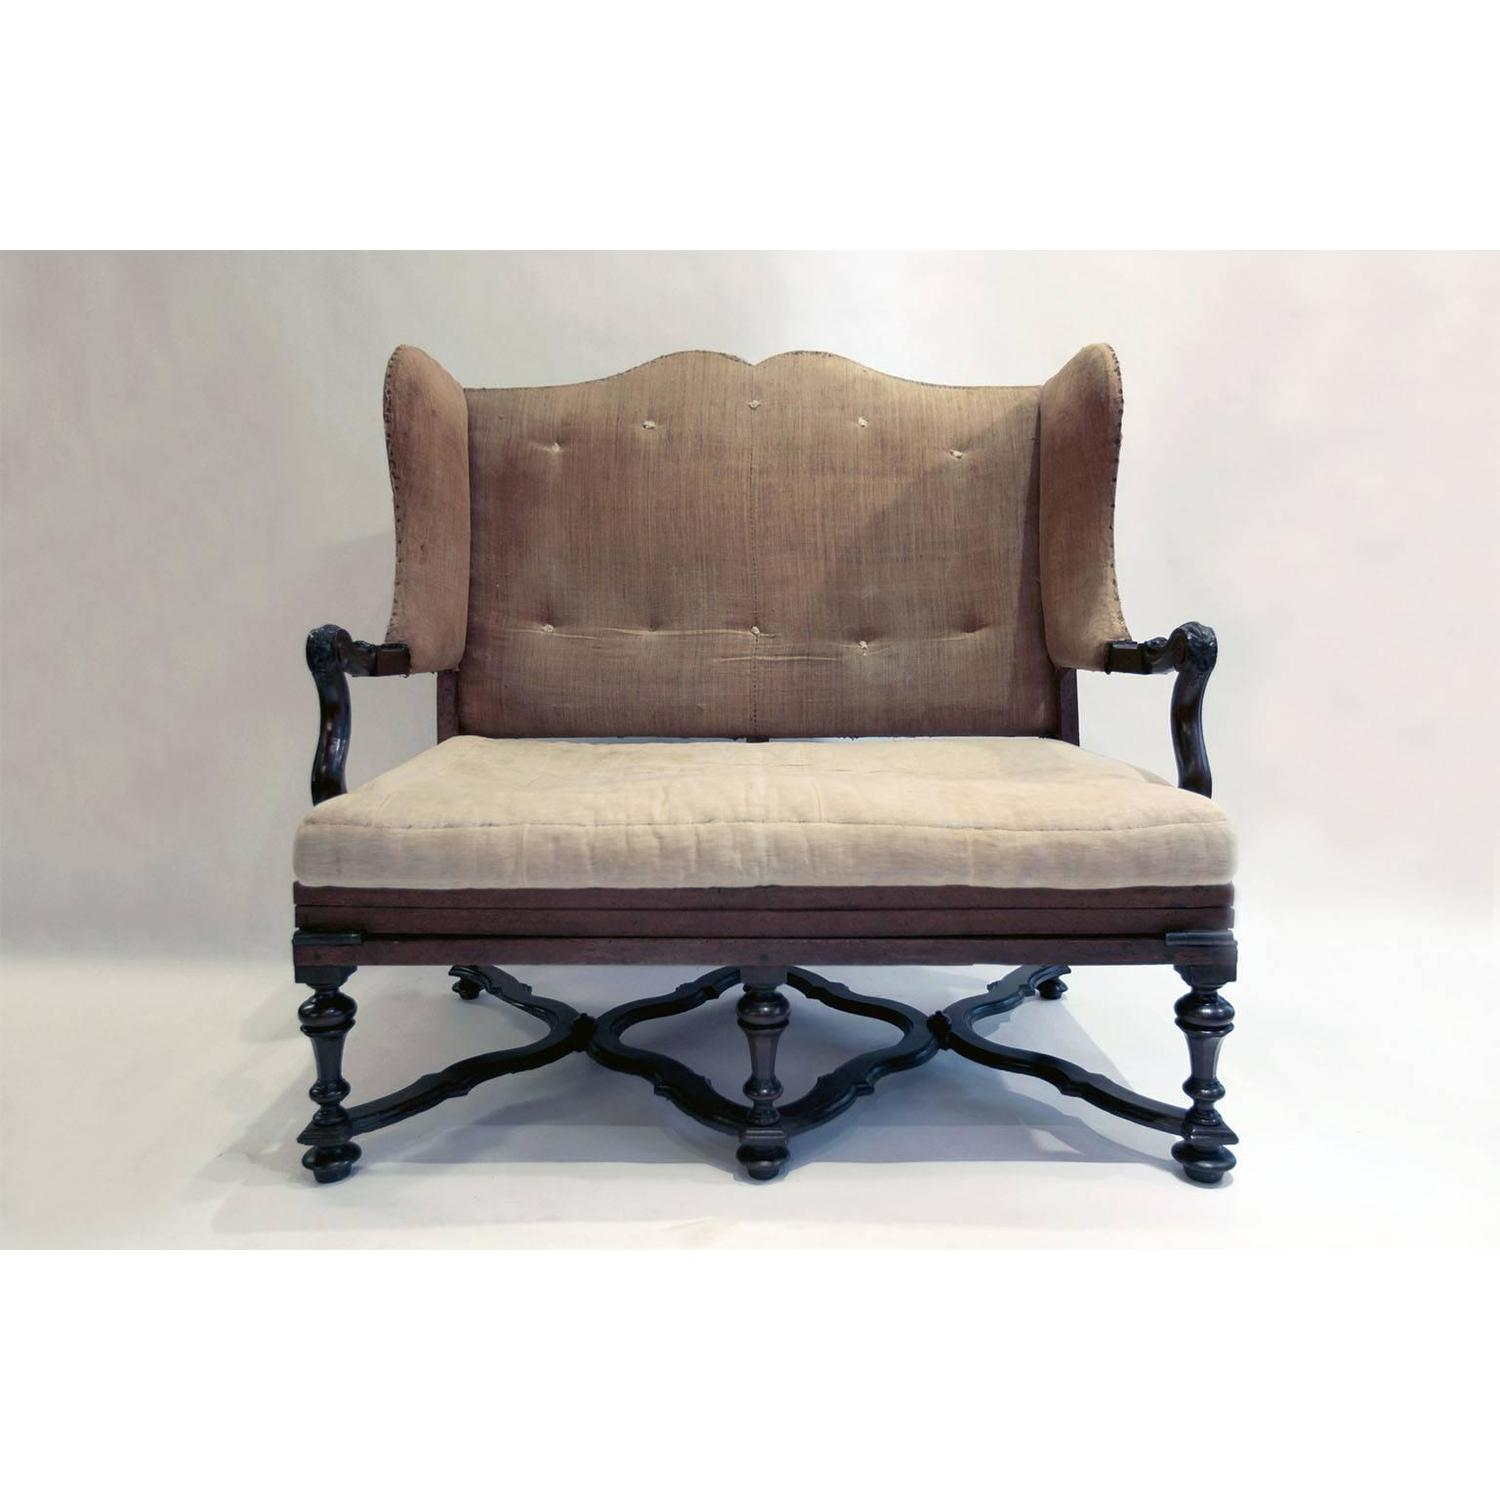 17th Century Italian Sofa-Bed For Sale At 1stdibs